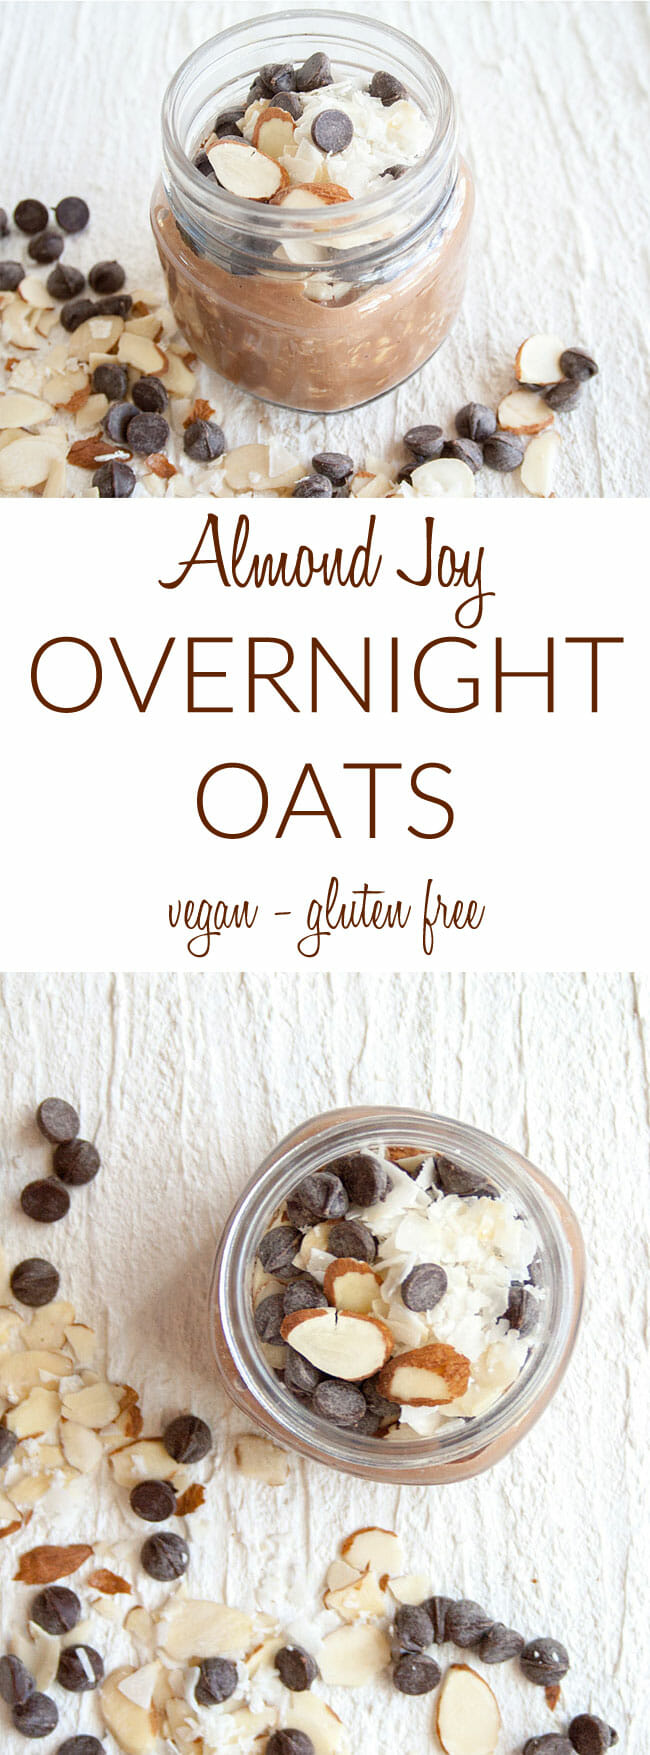 Vegan Overnight Oats collage photo with text.